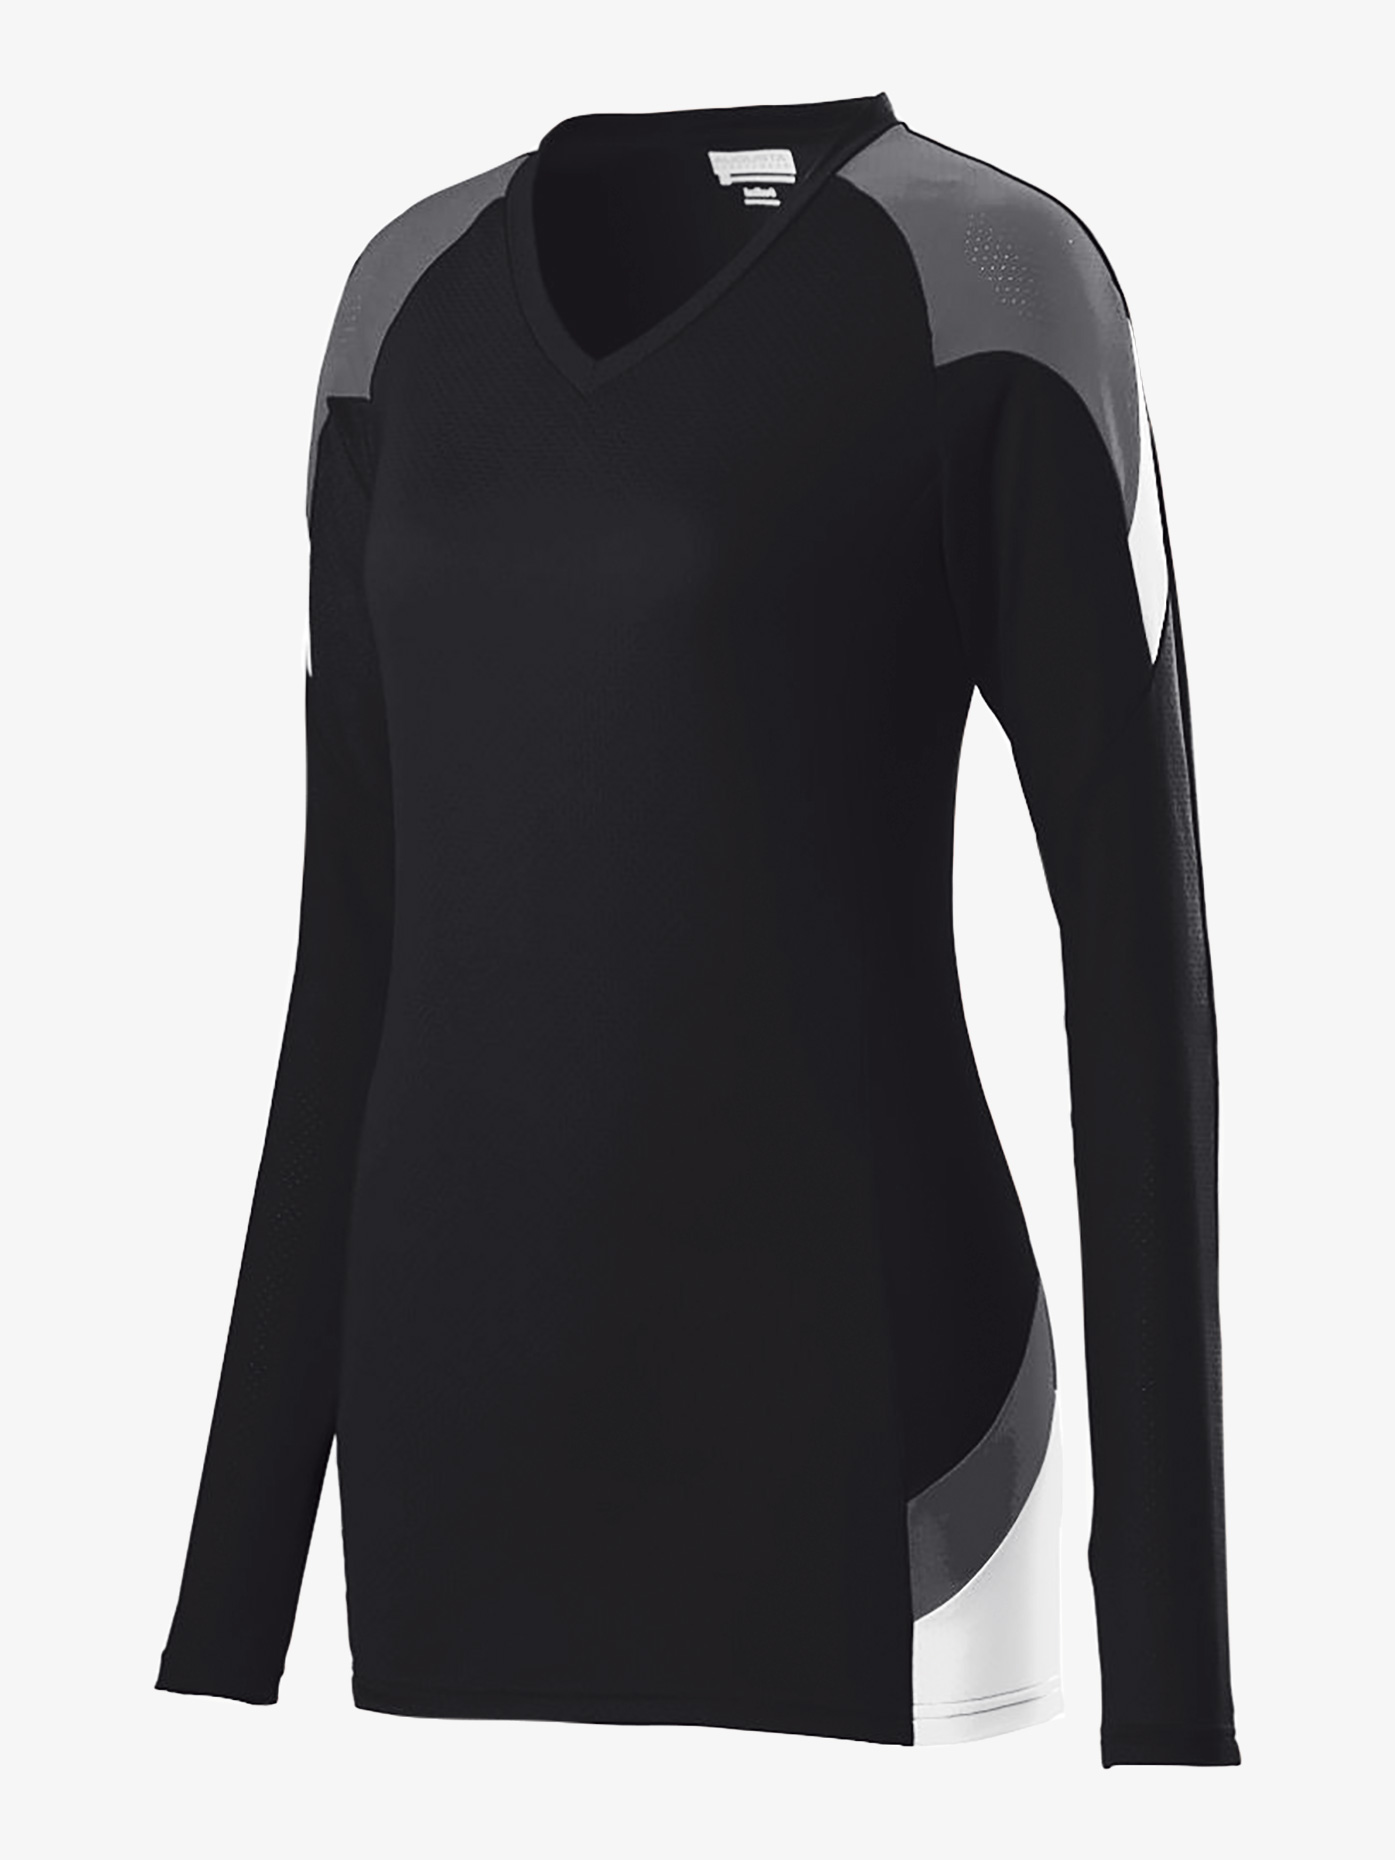 Augusta Womens Long Sleeve Workout Top AUG1320E